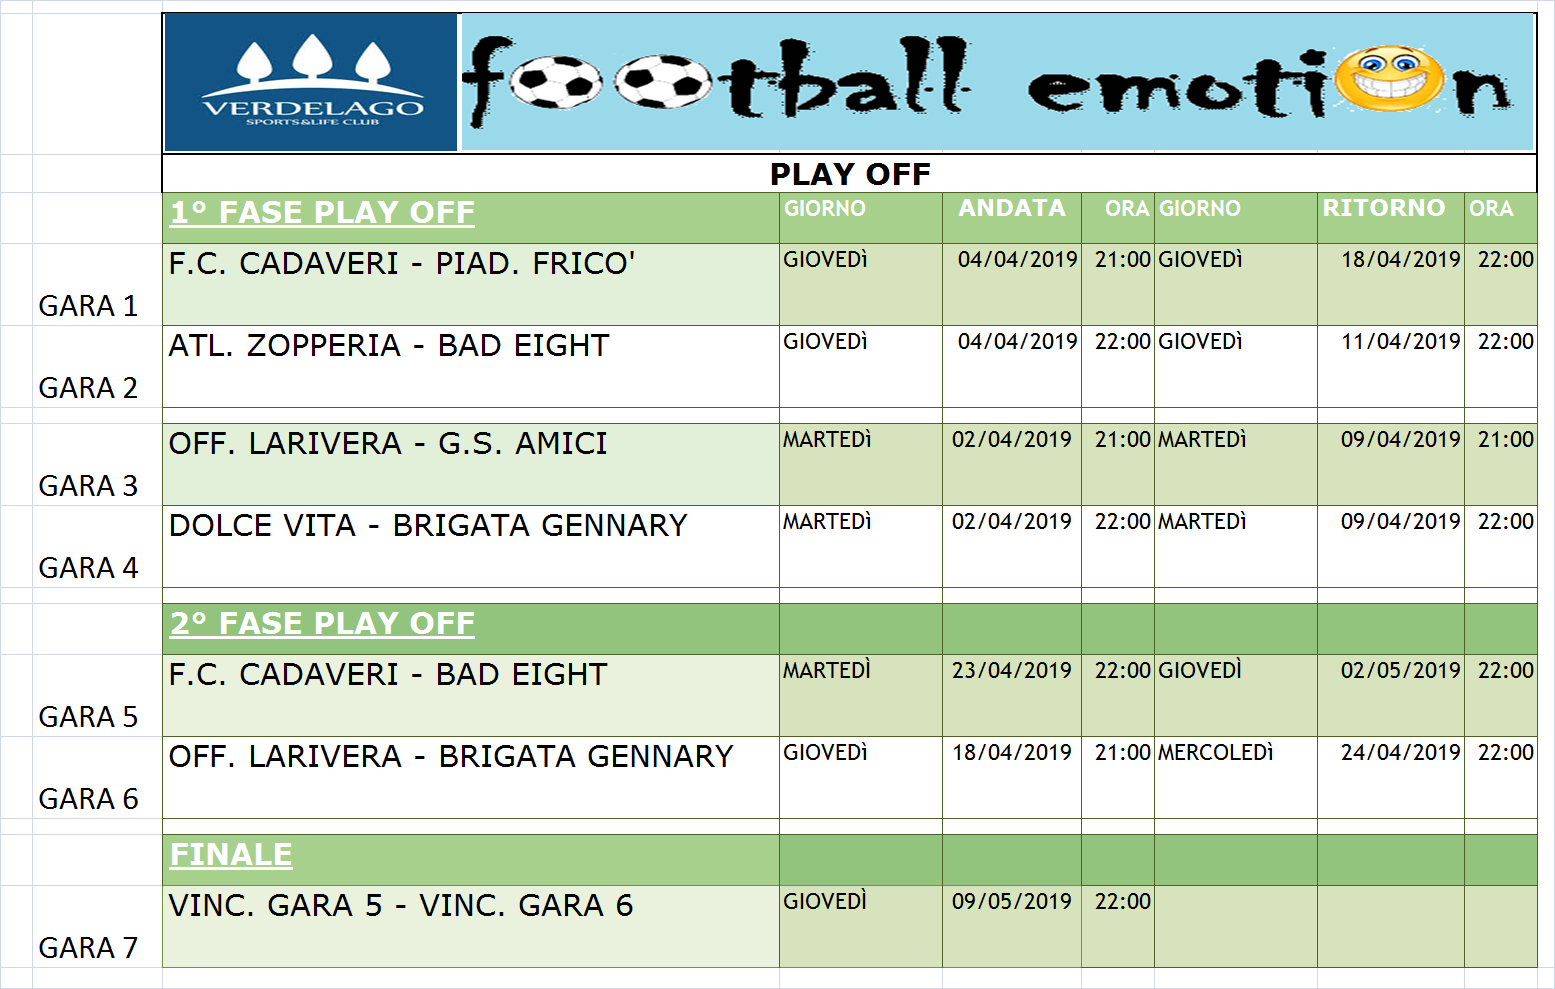 Calendario Play Off.Calendario Play Off 19 04 19 Verdelago